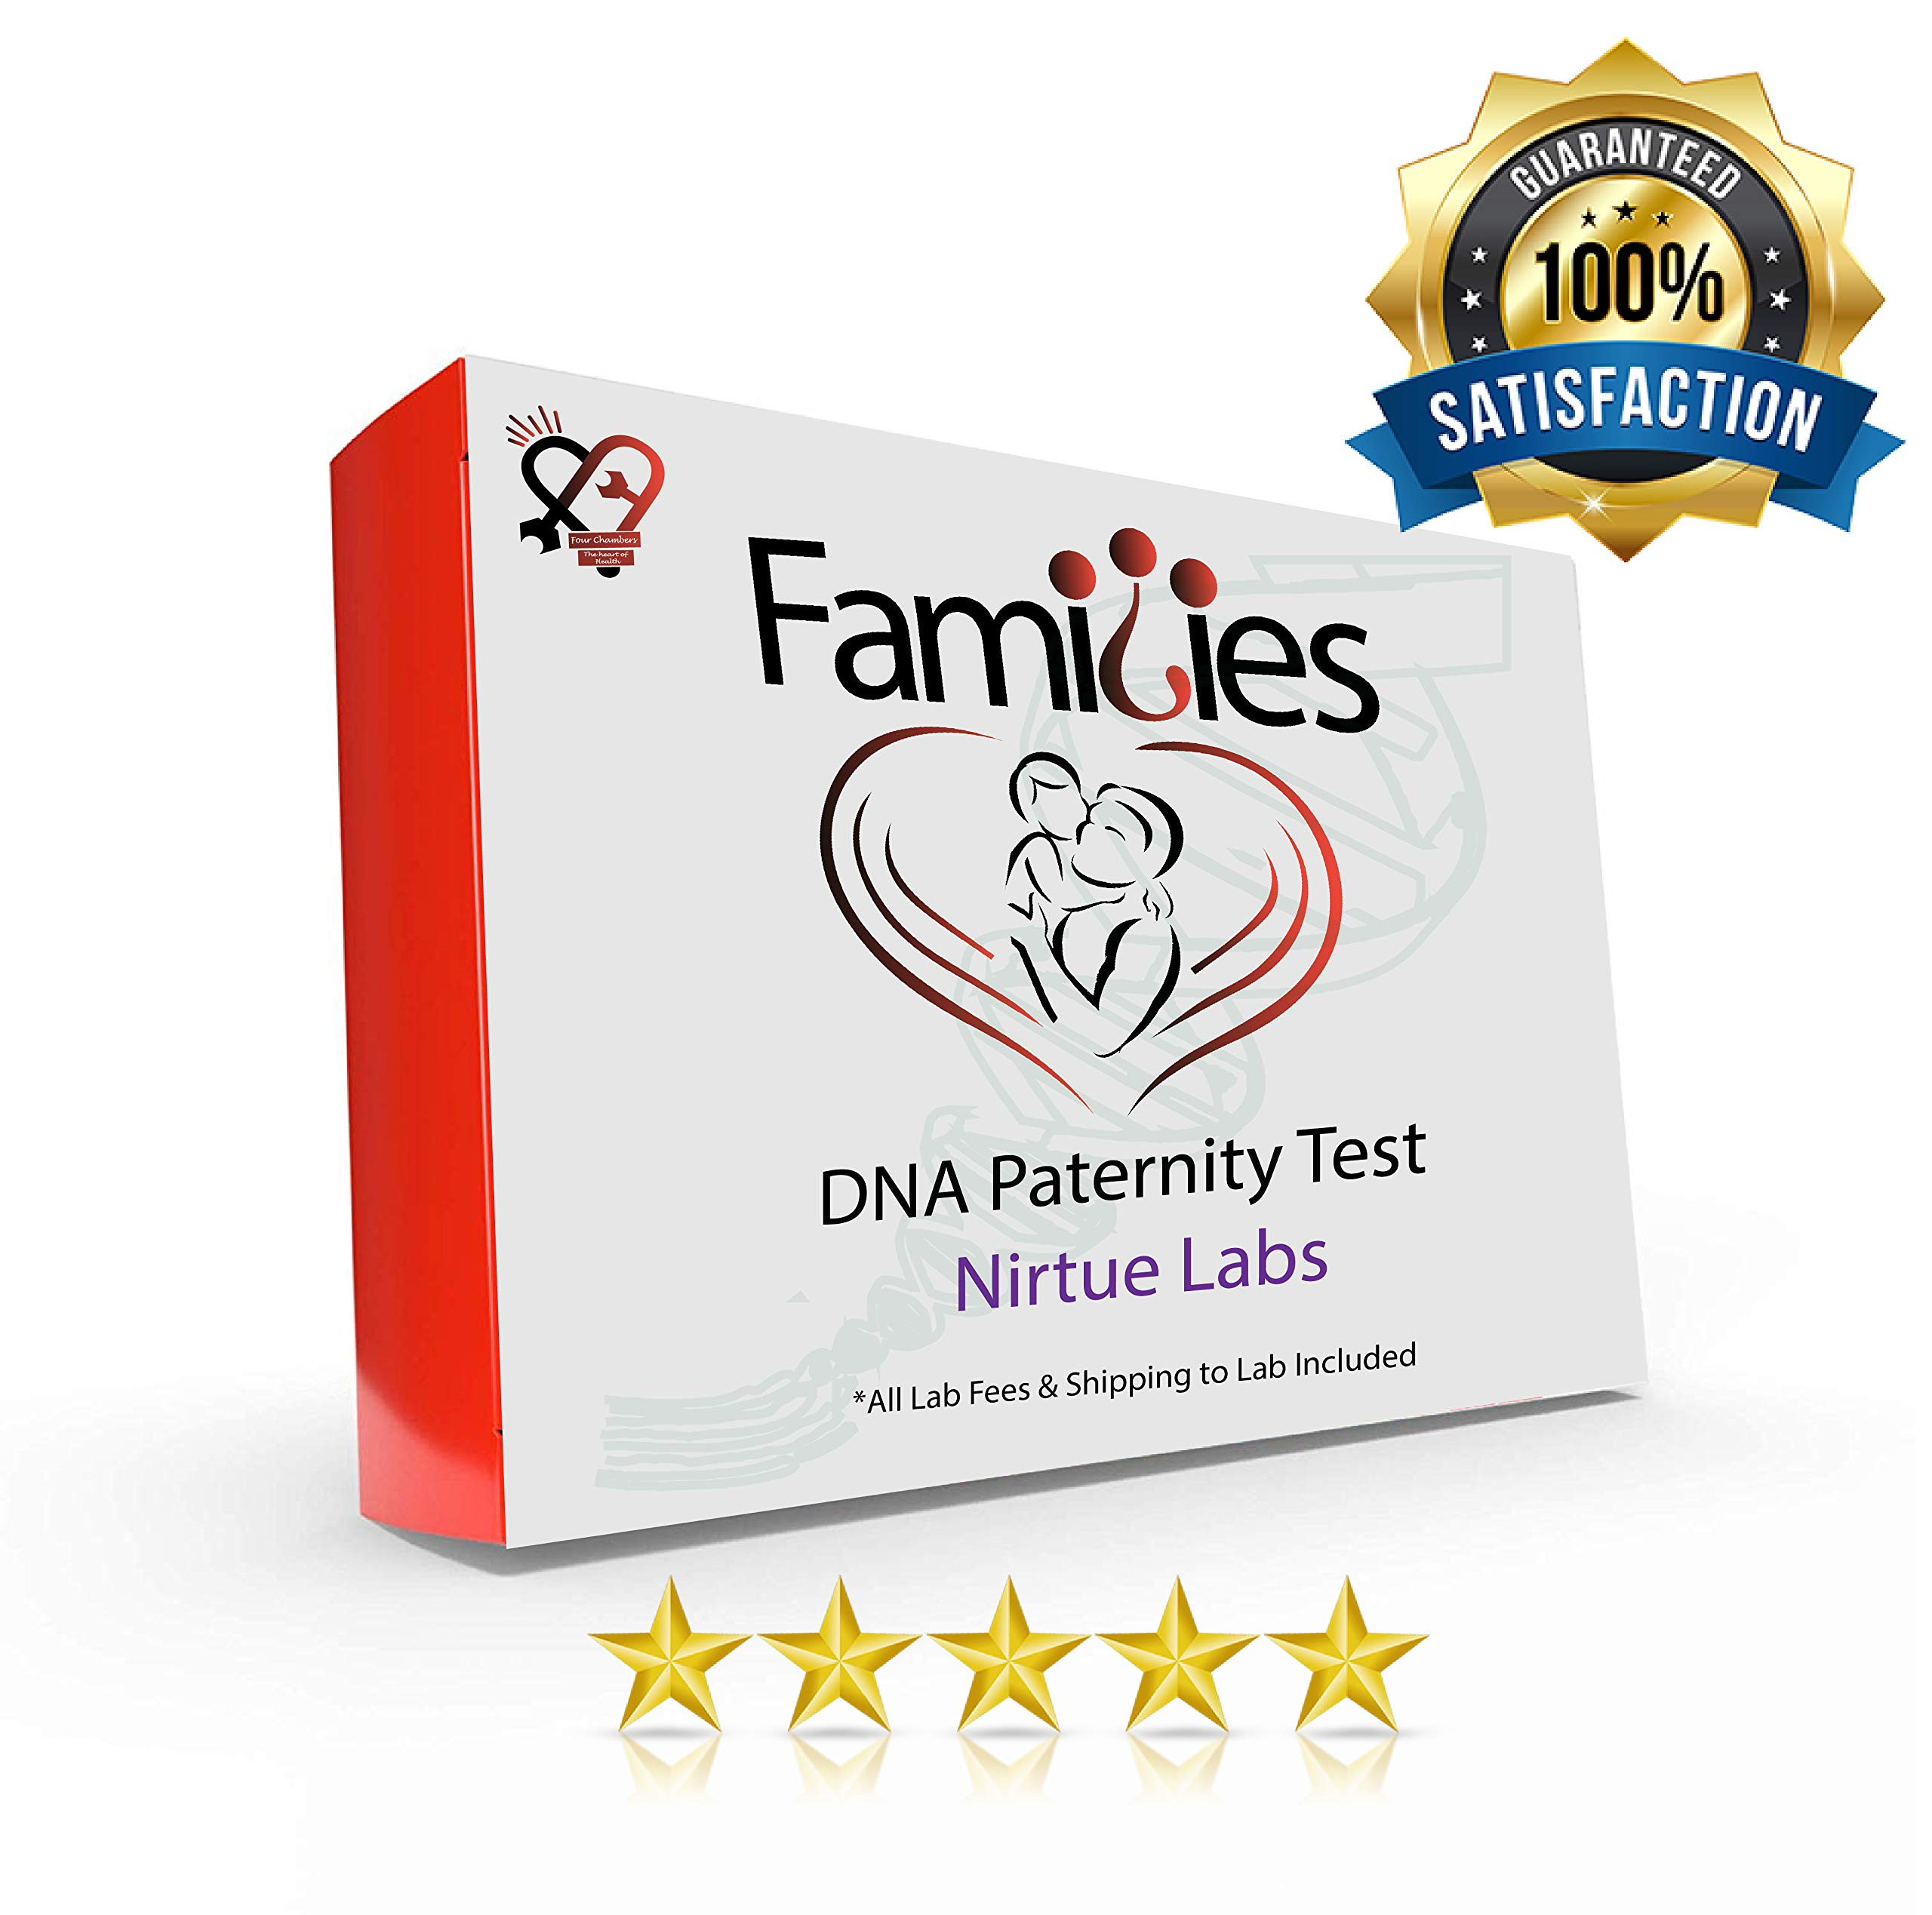 At Home DNA Paternity (Father) Test Kit - Includes All Lab Fees! | Greatest Accuracy (Next Gen) Guaranteed | Simple, Results to 100% Accuracy in The Privacy of Your Home! for 2-Person Analysis by Nirtue Labs